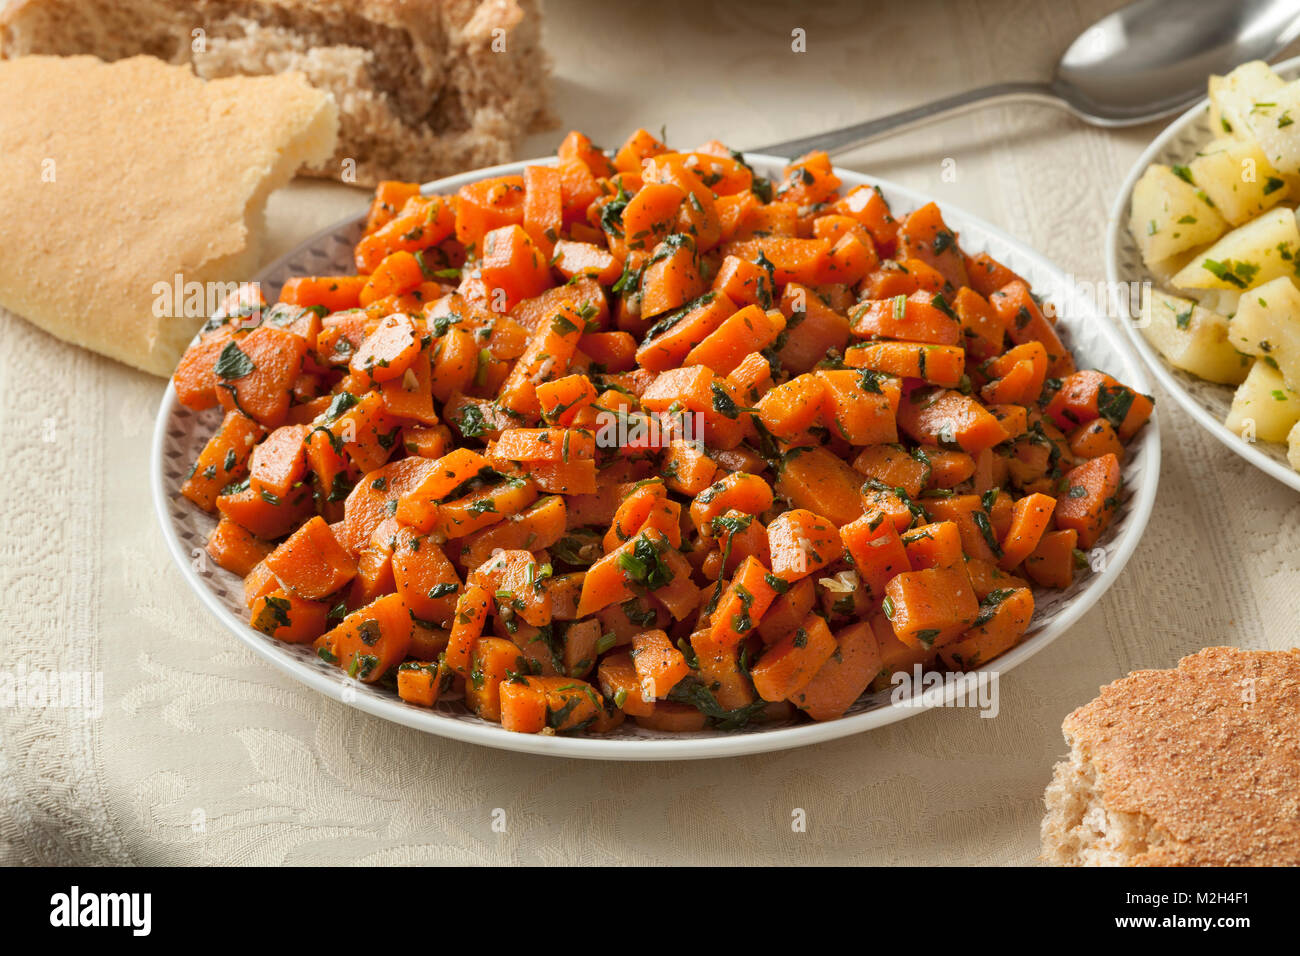 Traditional Moroccan carrot salad as a side dish - Stock Image